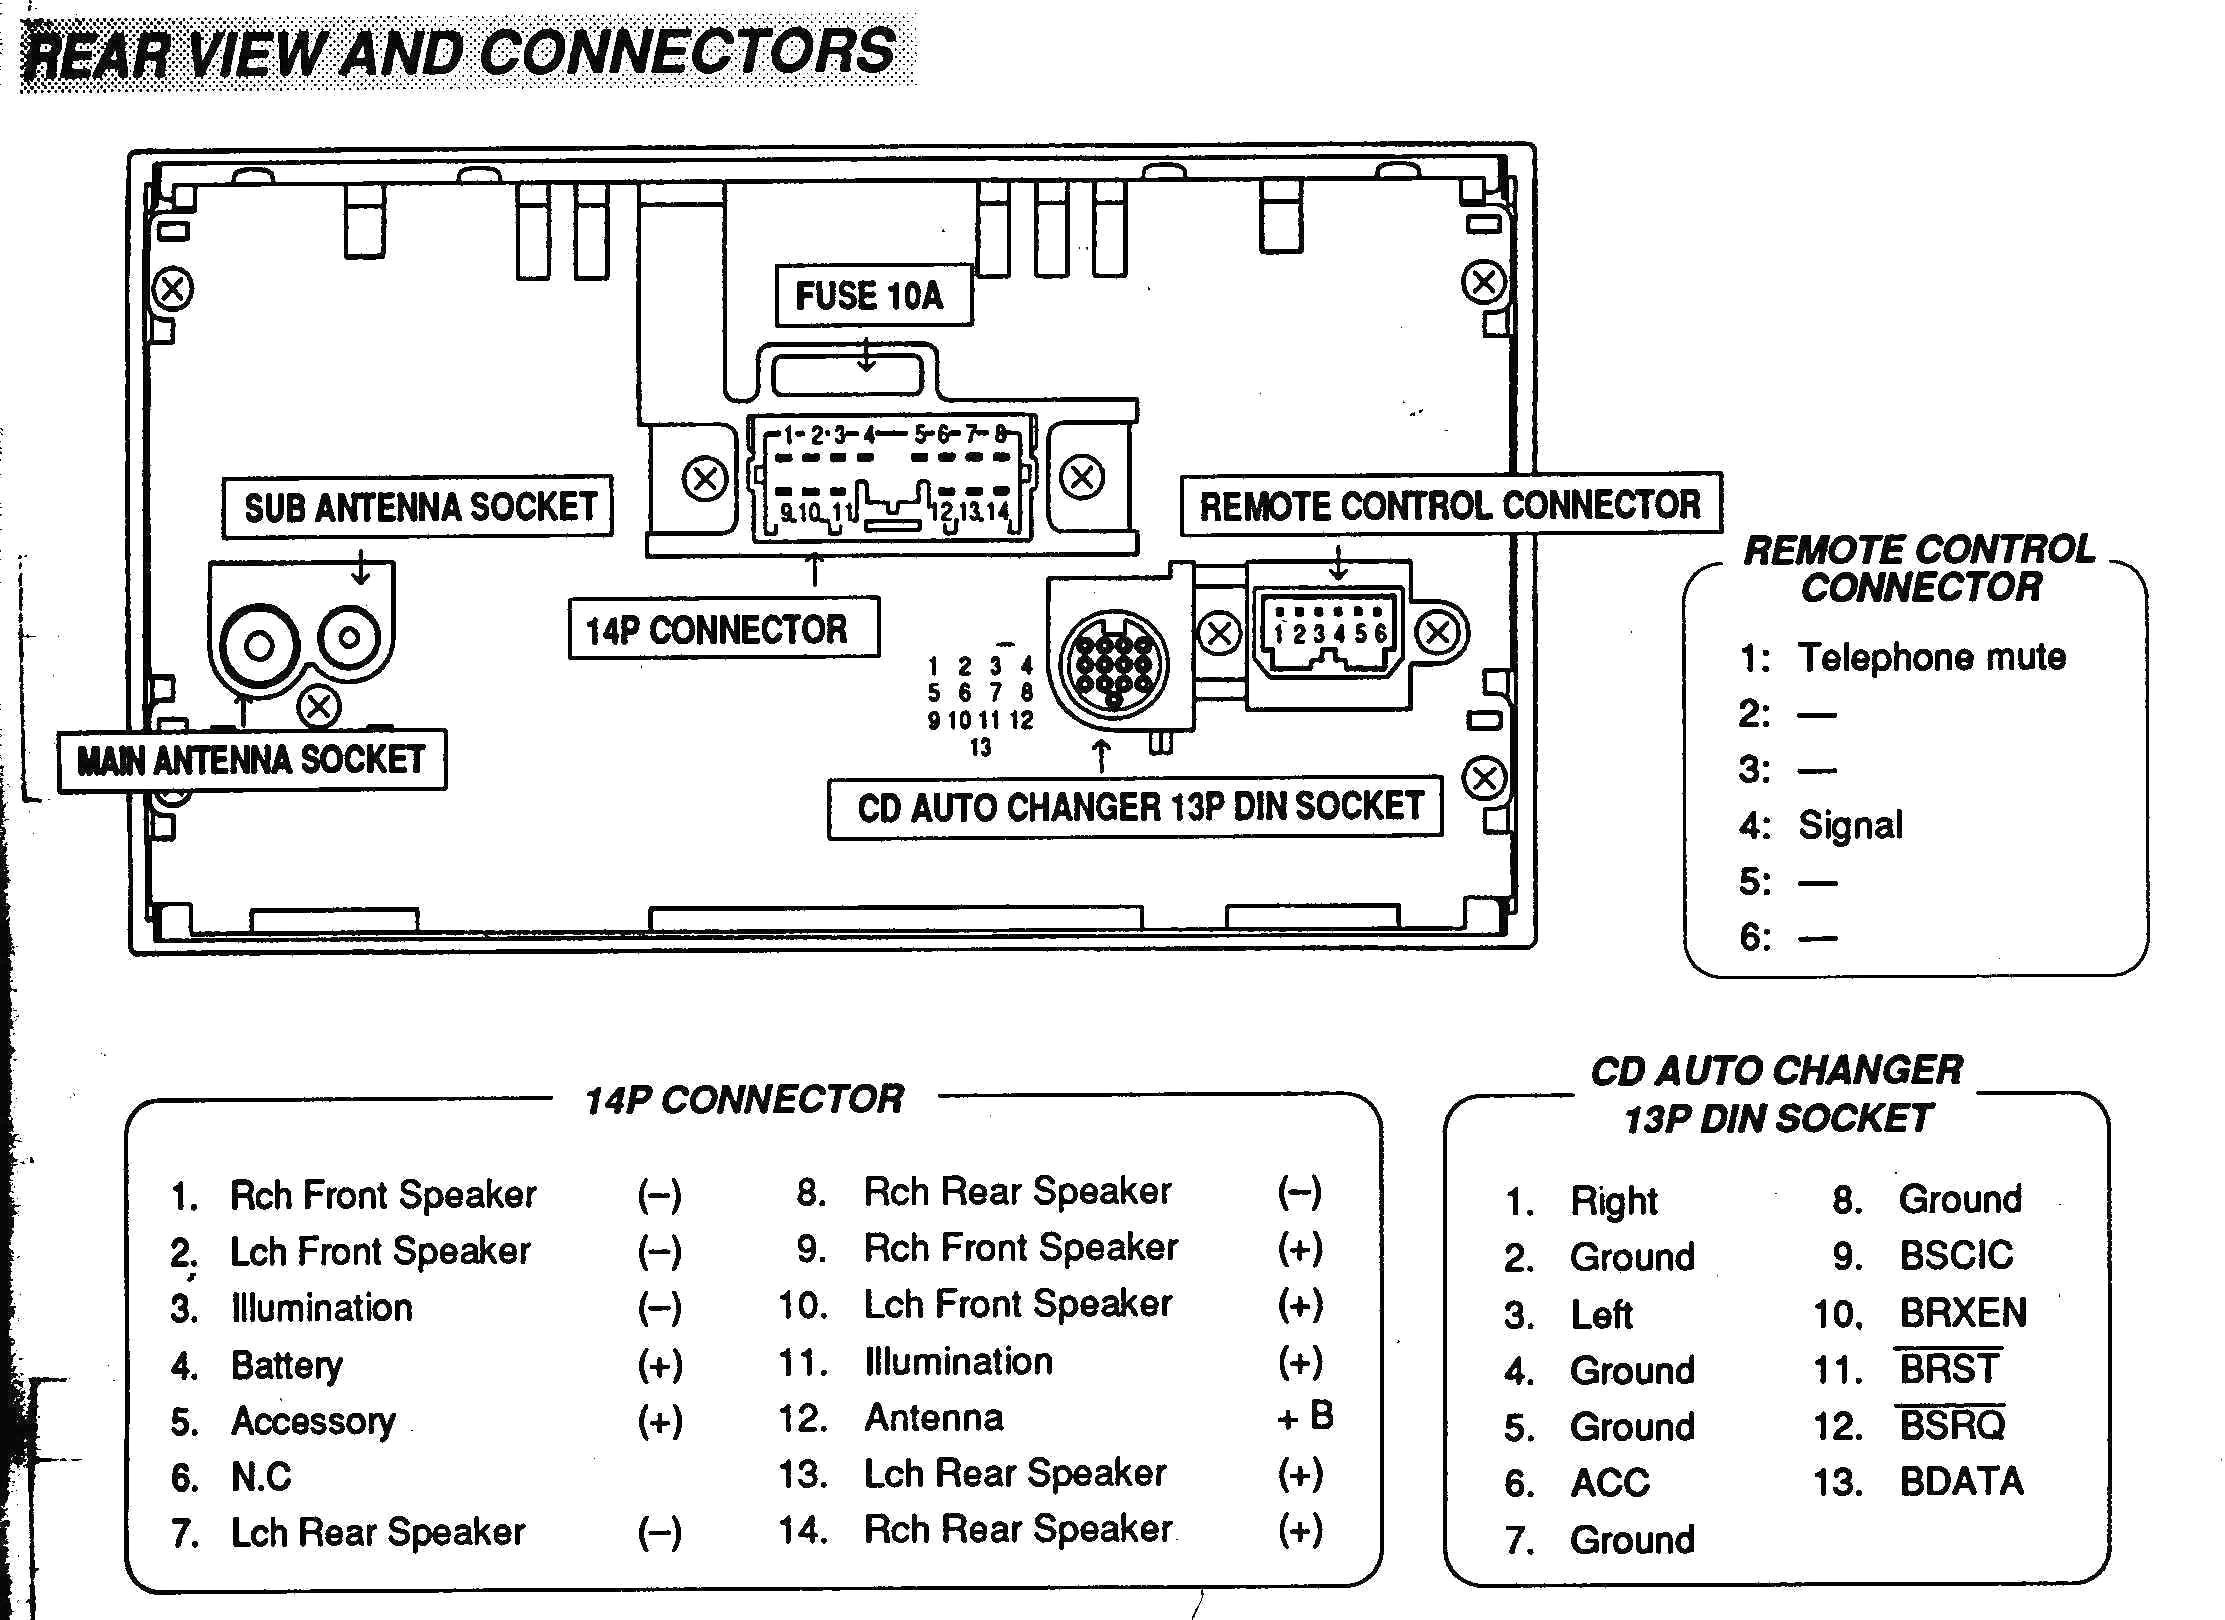 lv4_494] cadillac sts wiring diagram | solid-produce wiring diagram option  | solid-produce.confort-satisfaction.fr  confort satisfaction